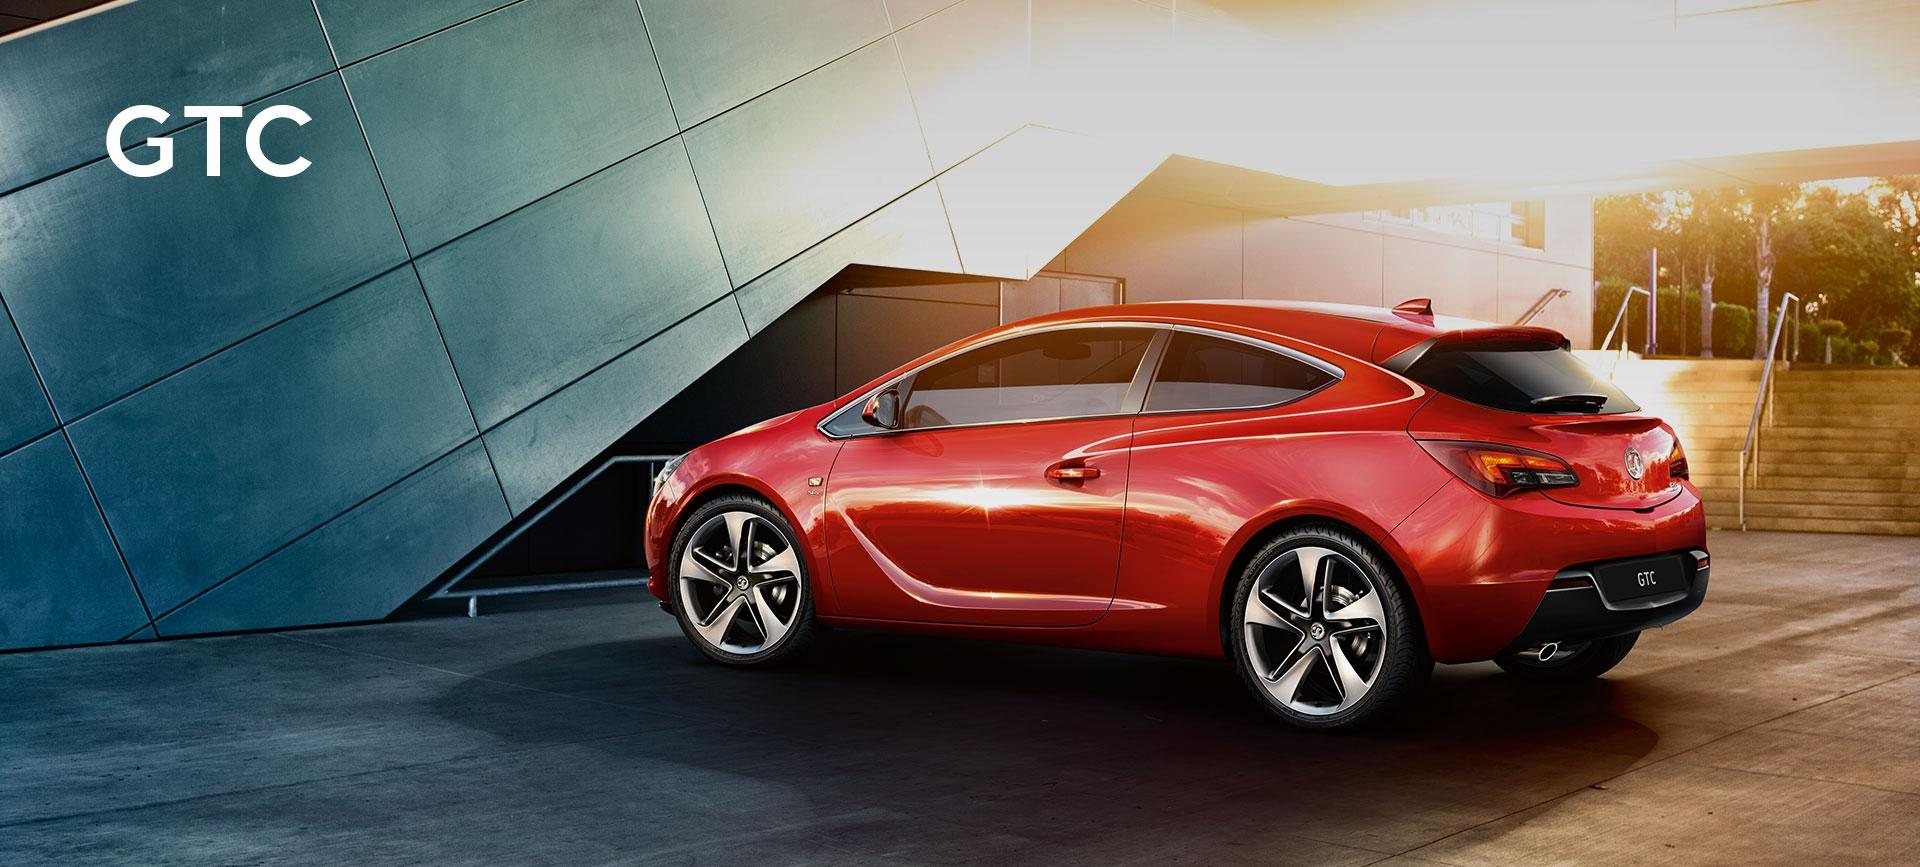 The Gtc Features And Images Perrys Vauxhall In Uk Sports Car